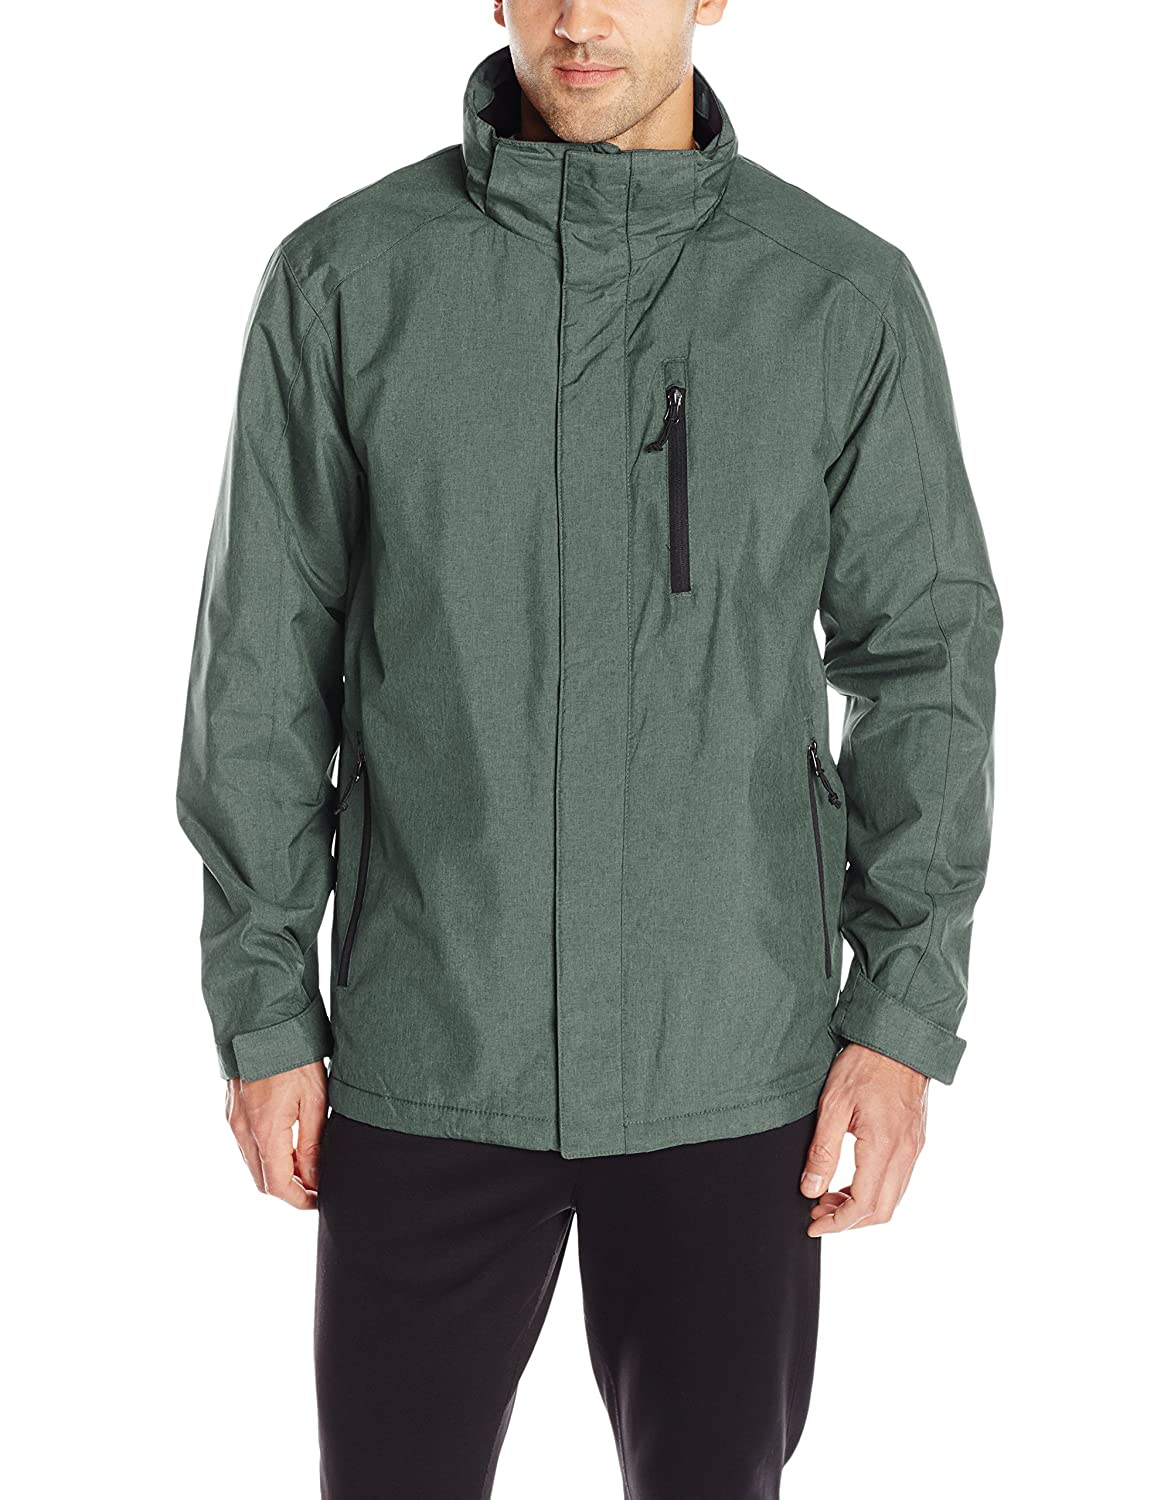 32Degrees Weatherproof Men's 3 in 1 Systems Jacket with Inner Fleece 1069